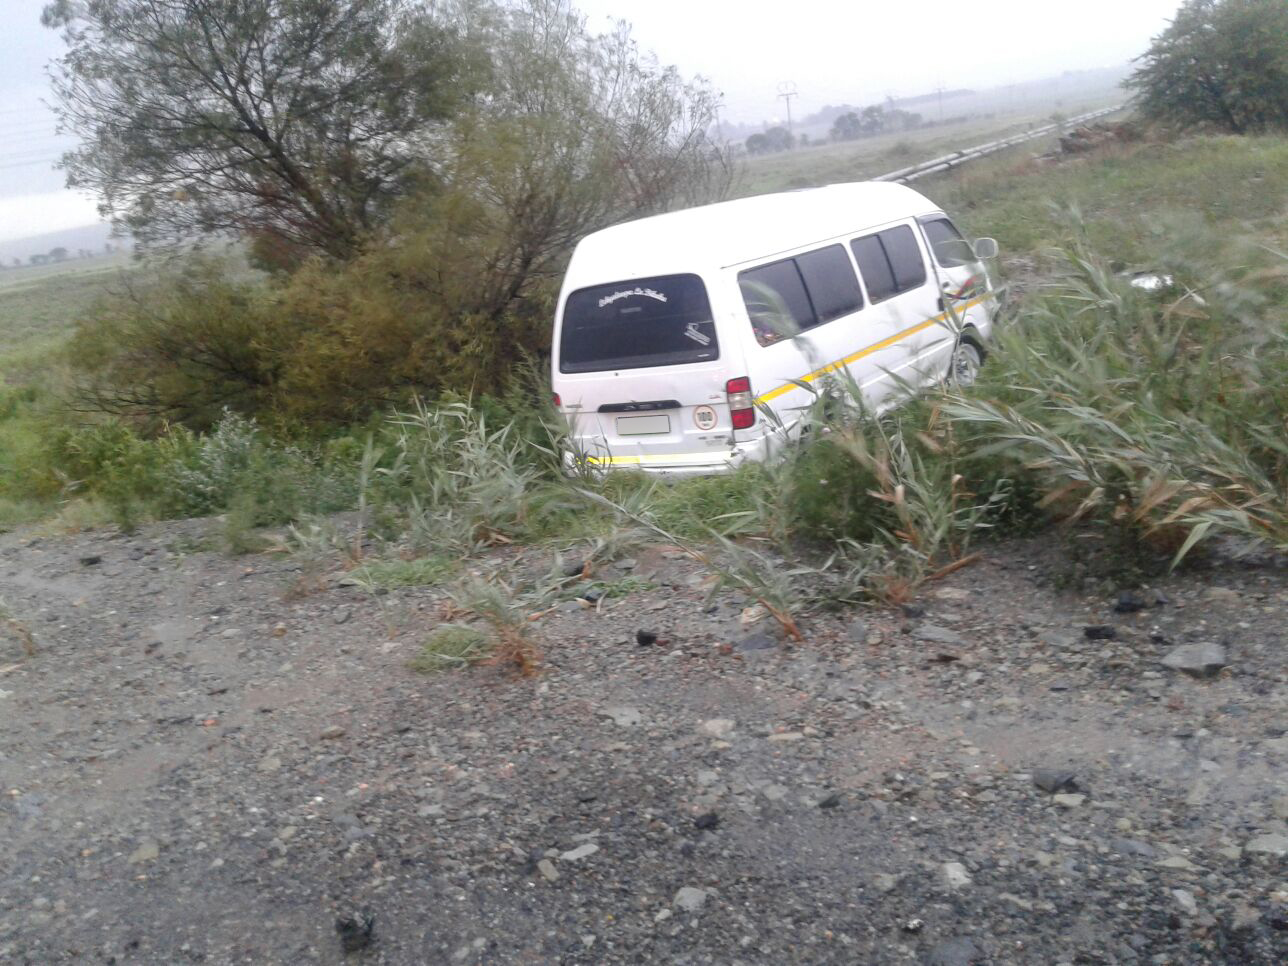 The Commission of Inquiry into Taxi Violence granted a 6 Month Extension